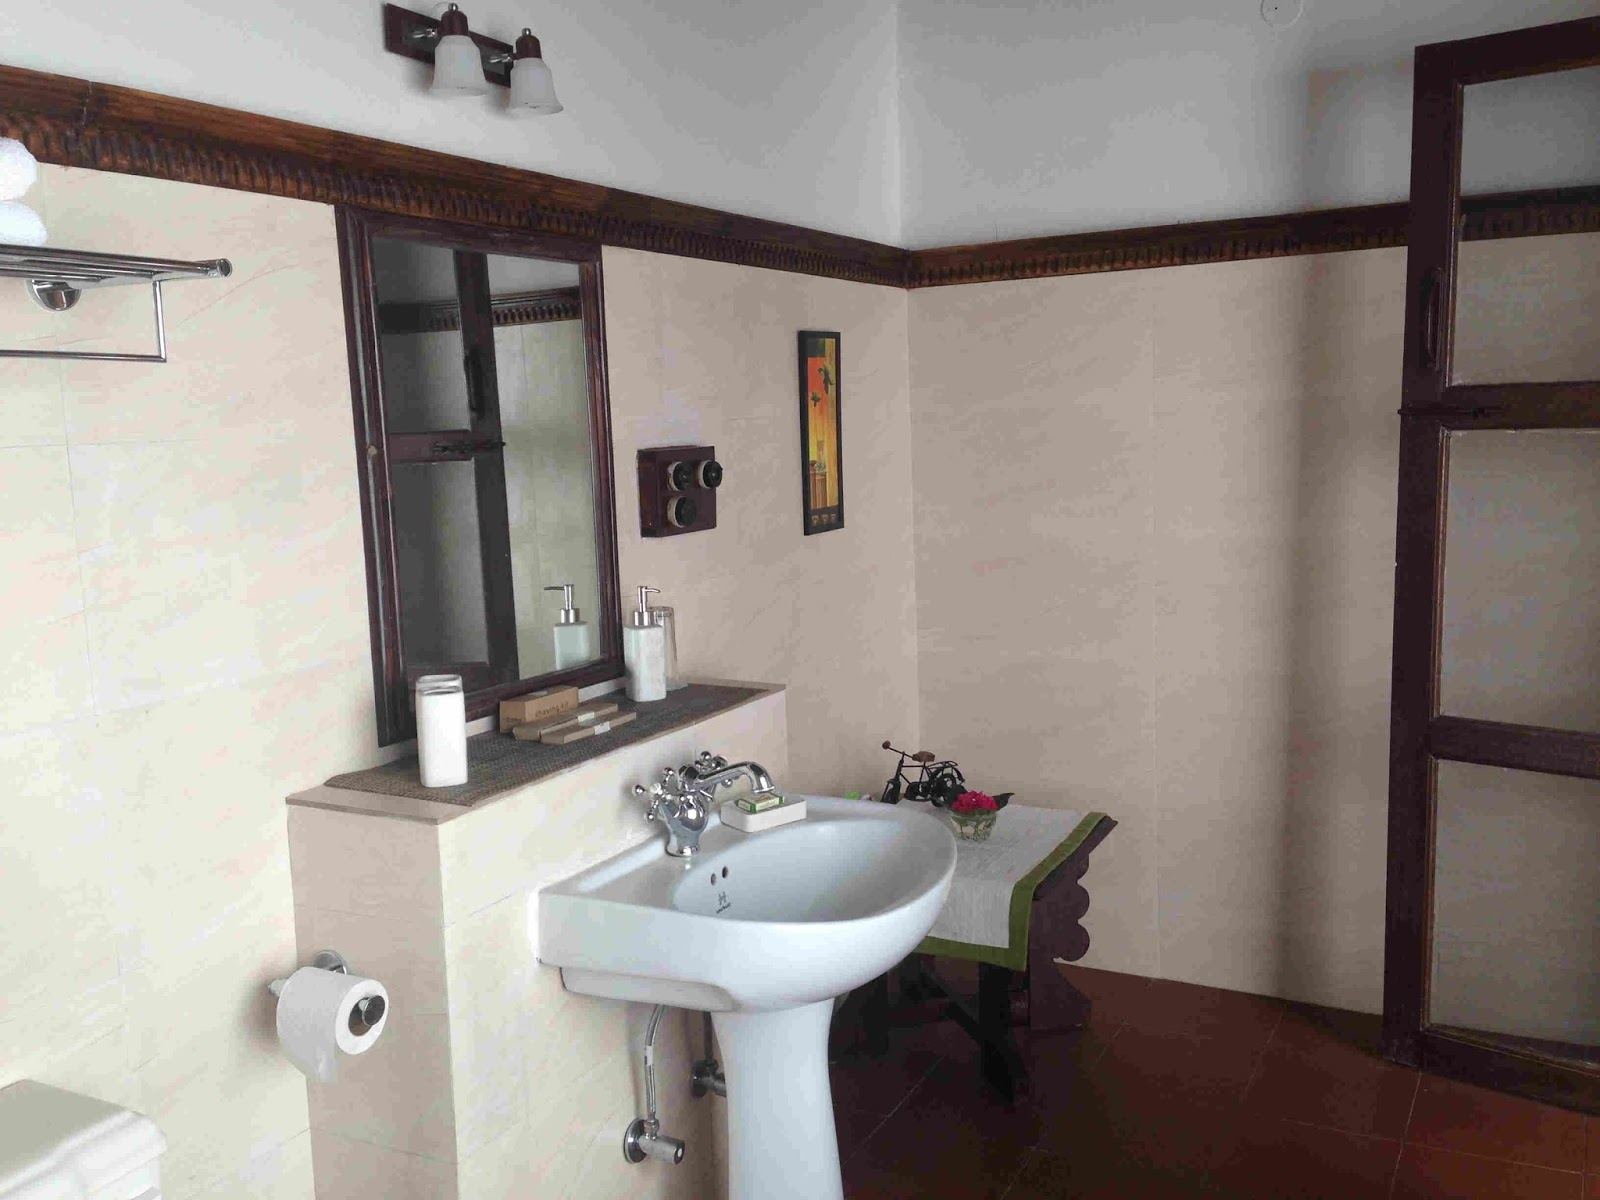 Bathroom Designs In Kerala Of Brickcart Blog Kerala Architecture Has Been Bangalore 39 D